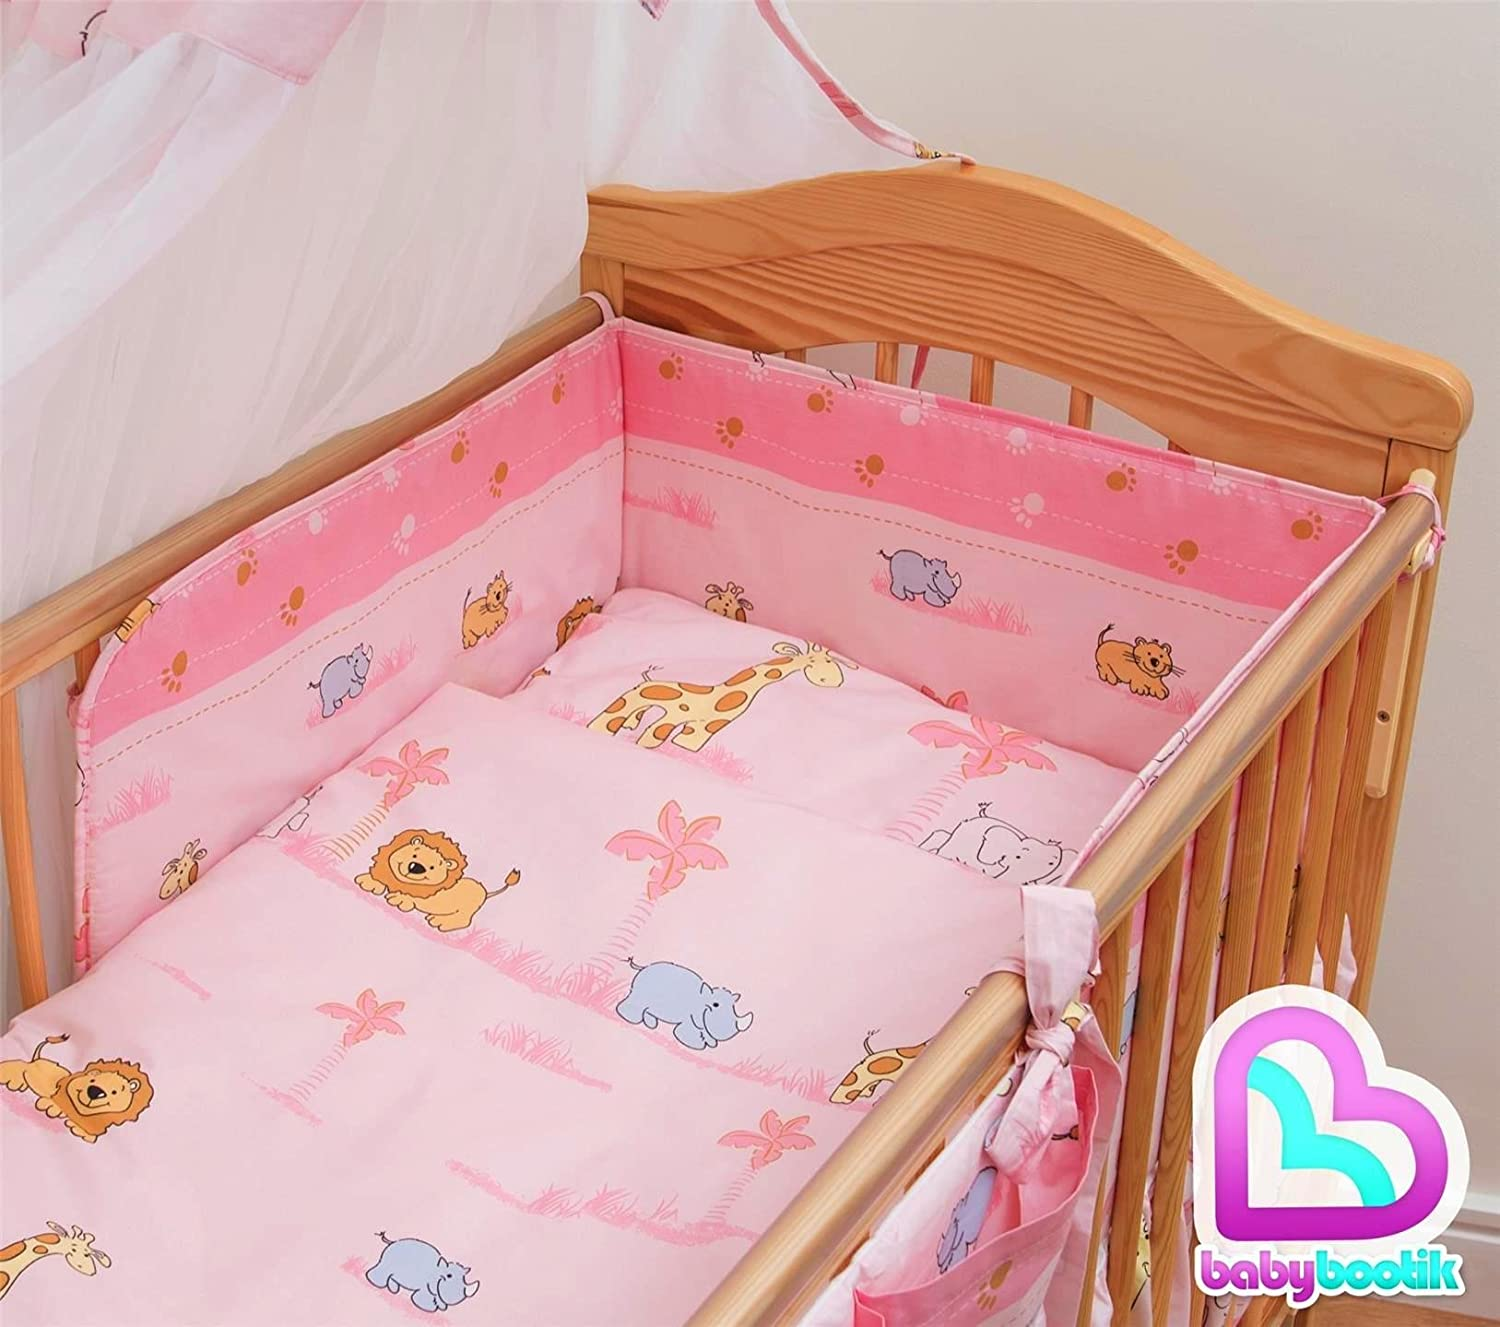 5 Piece Baby Children Bedding Set to Fit 120x60 or 140x70 cm Toddler Cot Bed to fit 120 x 60 cm Cot, 5